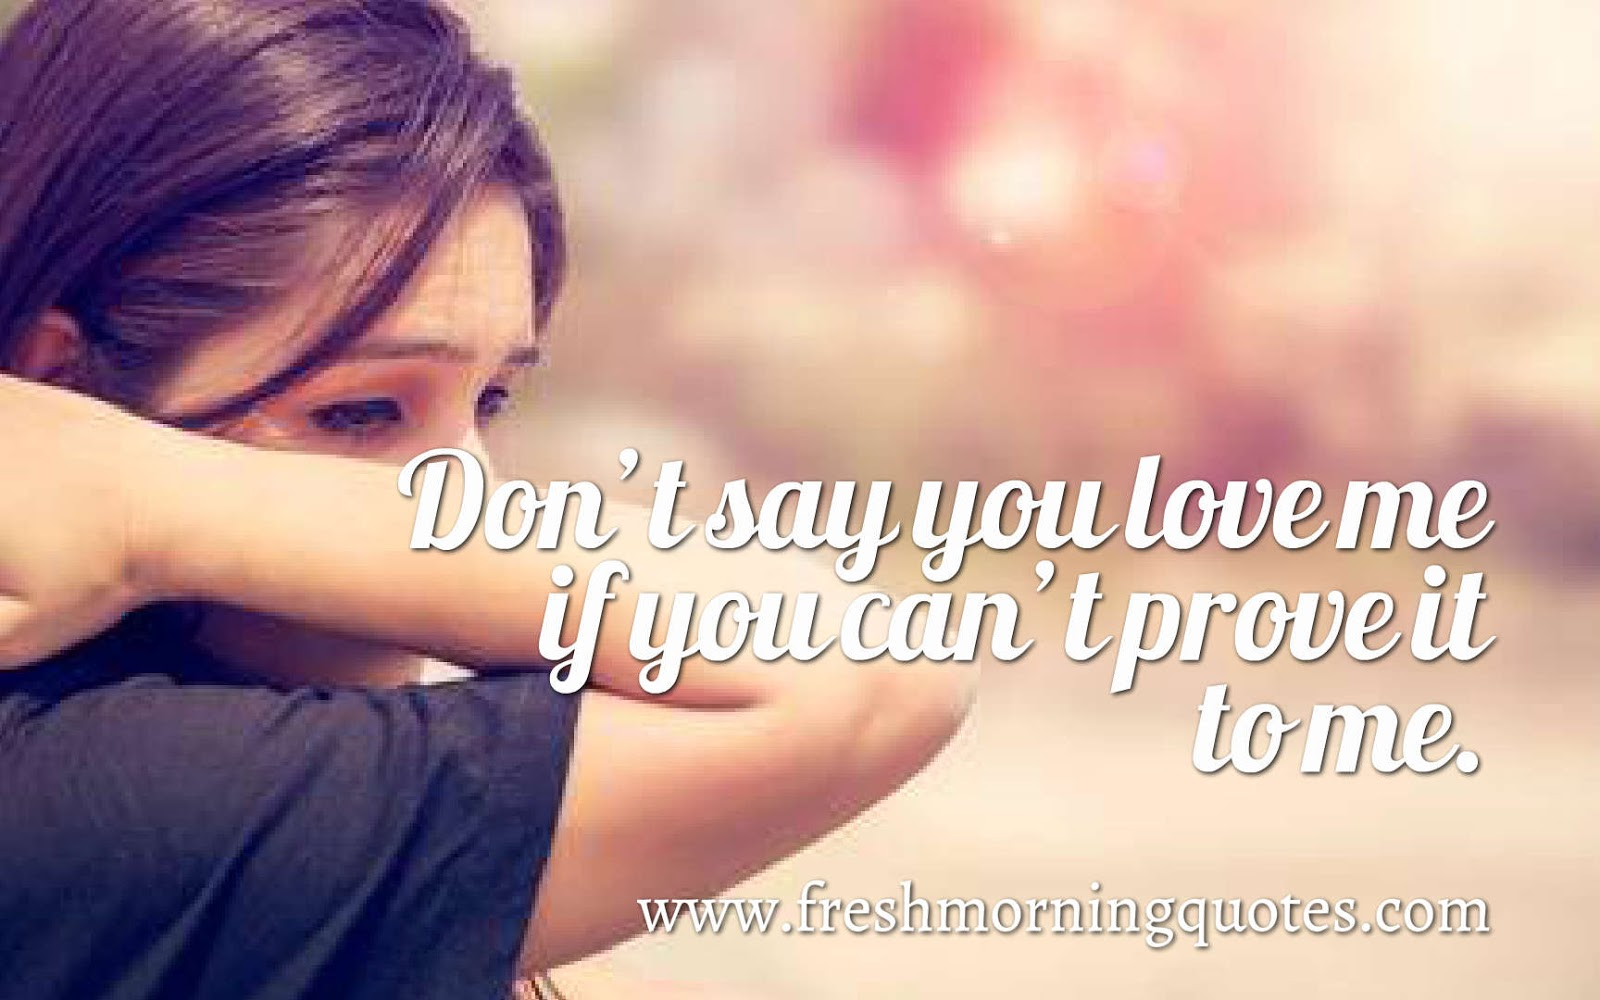 100 Love Failure Quotes With Images Freshmorningquotes